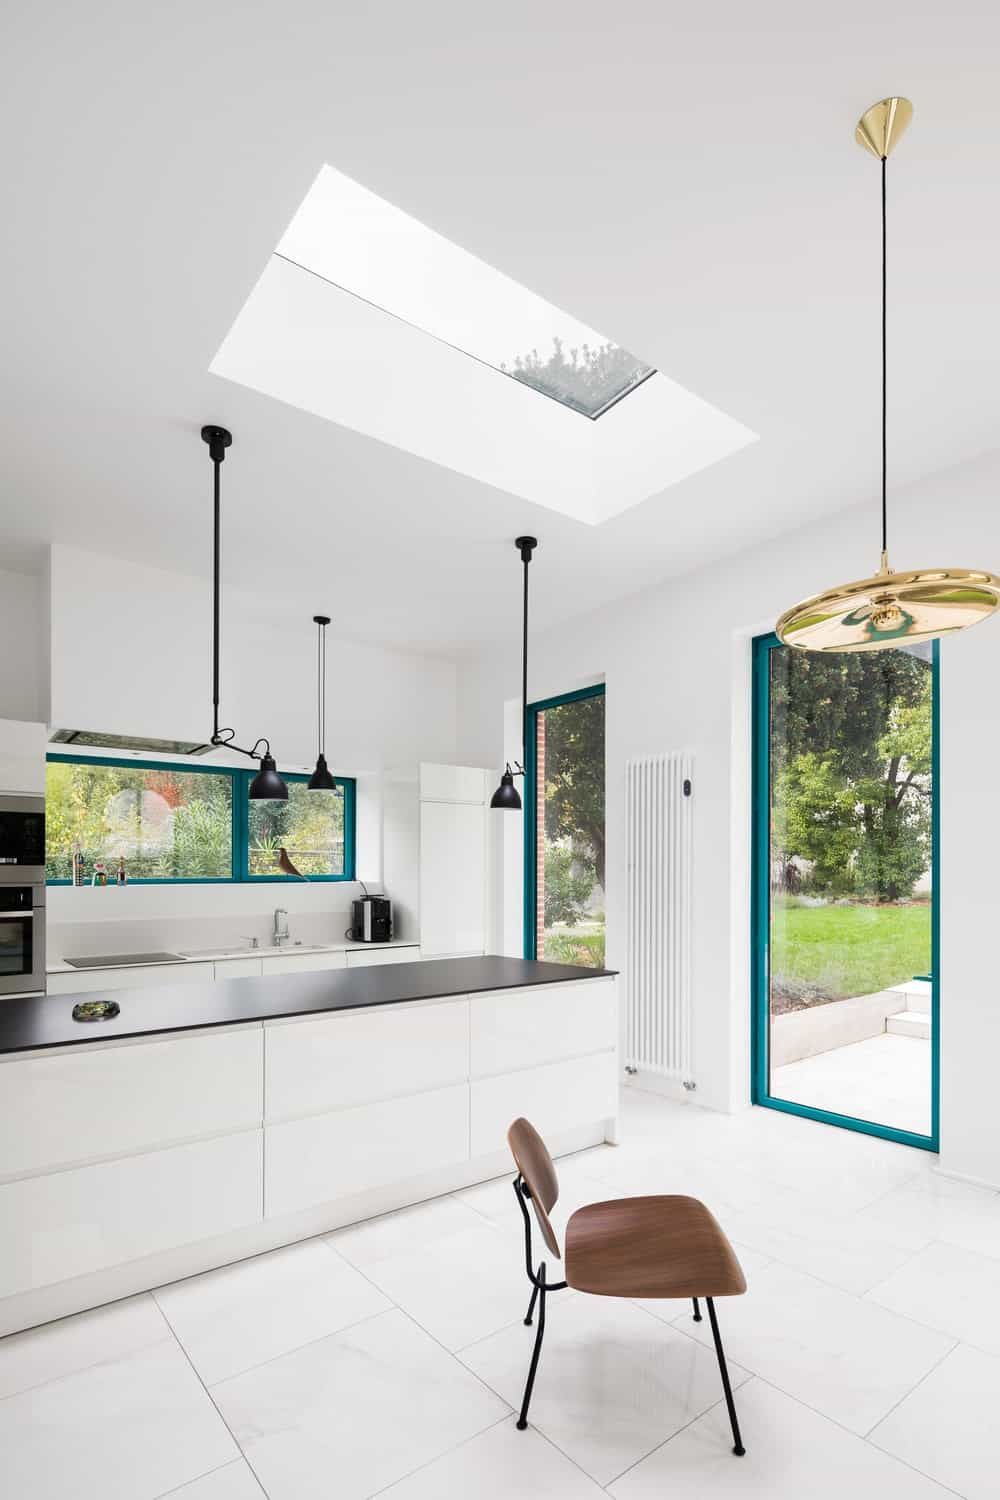 This is a simple and bright minimalist kitchen with a white ceiling and a skylight that brightenes the large white kitchen island topped with a black countertop.